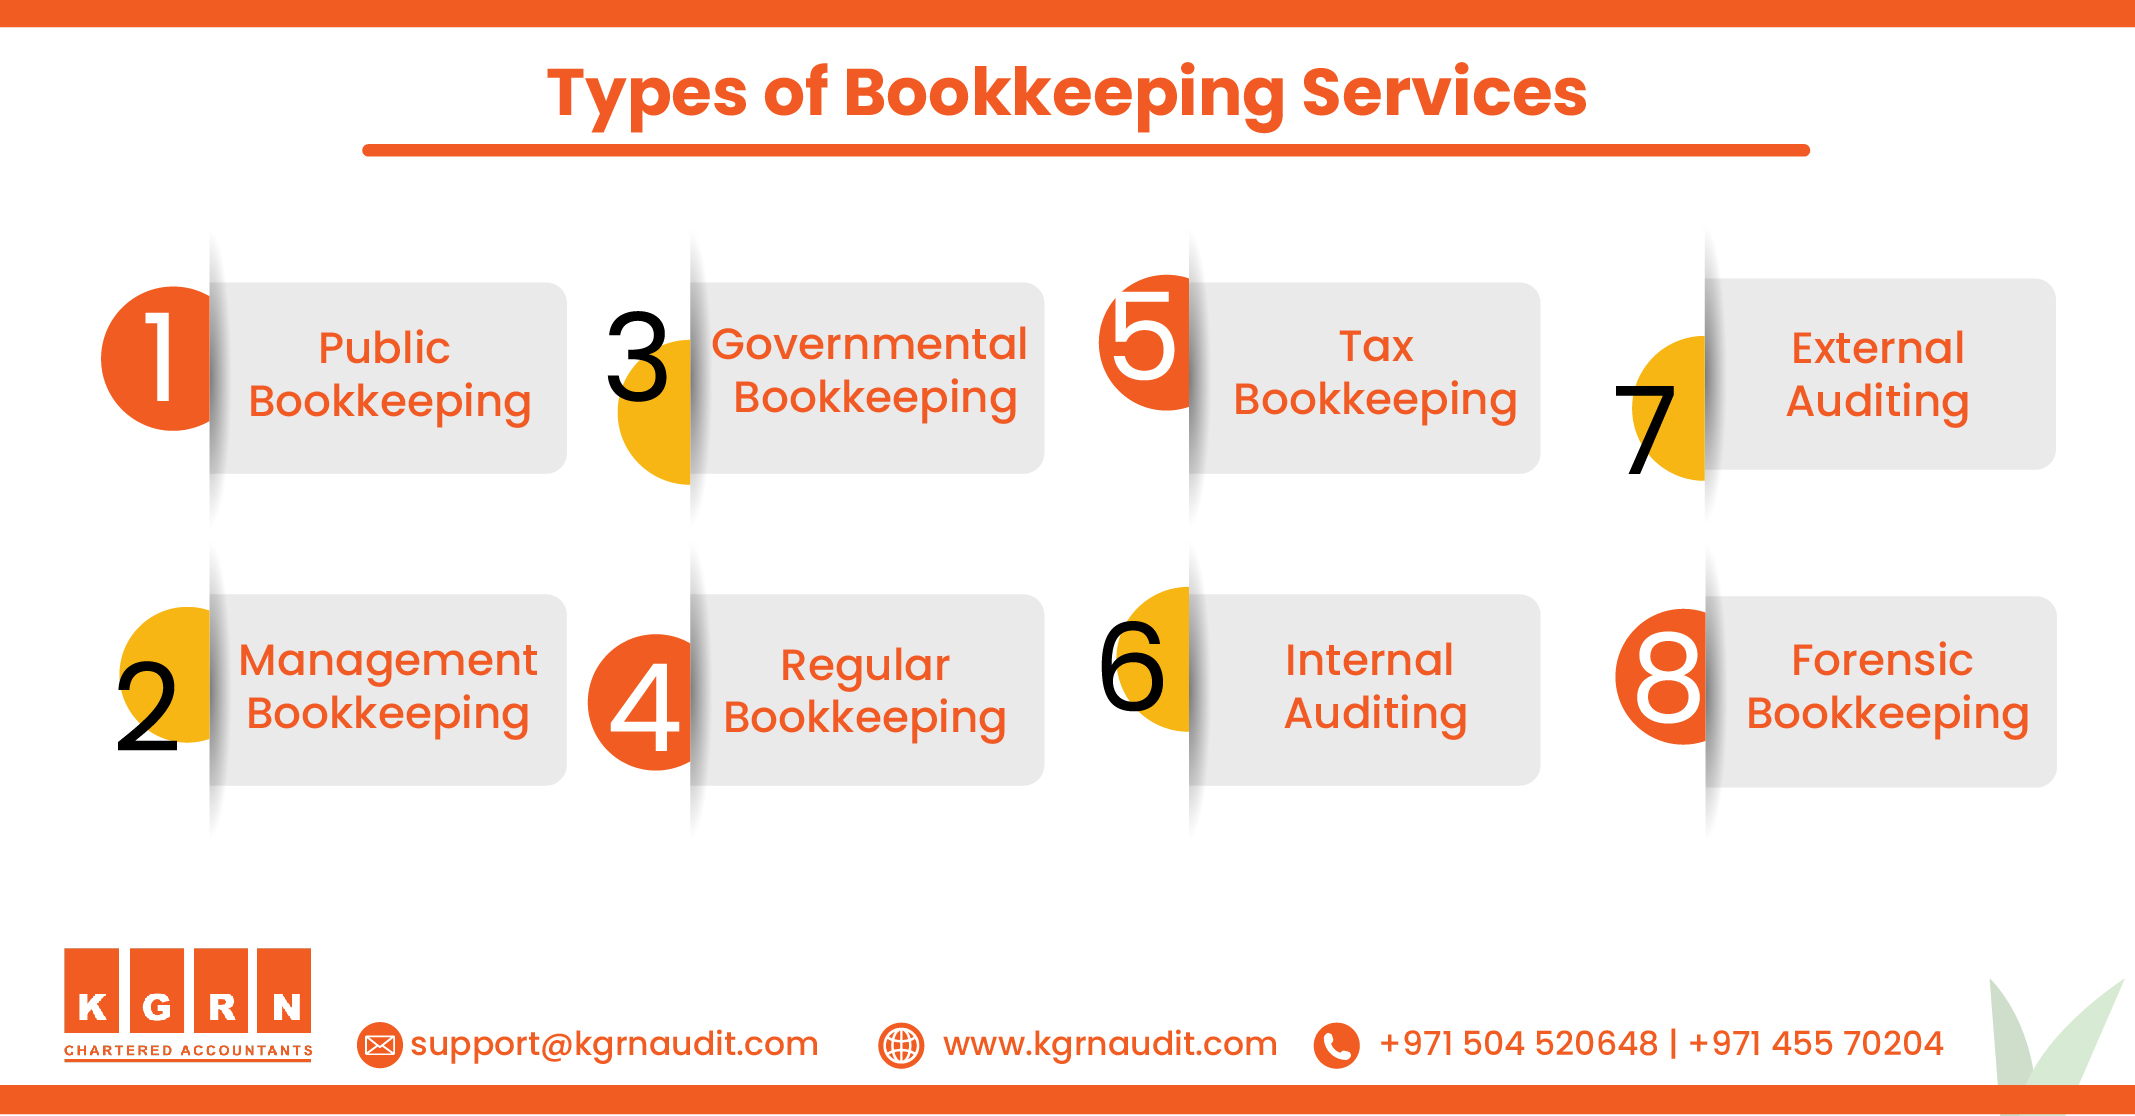 Types of Bookkeeping Services